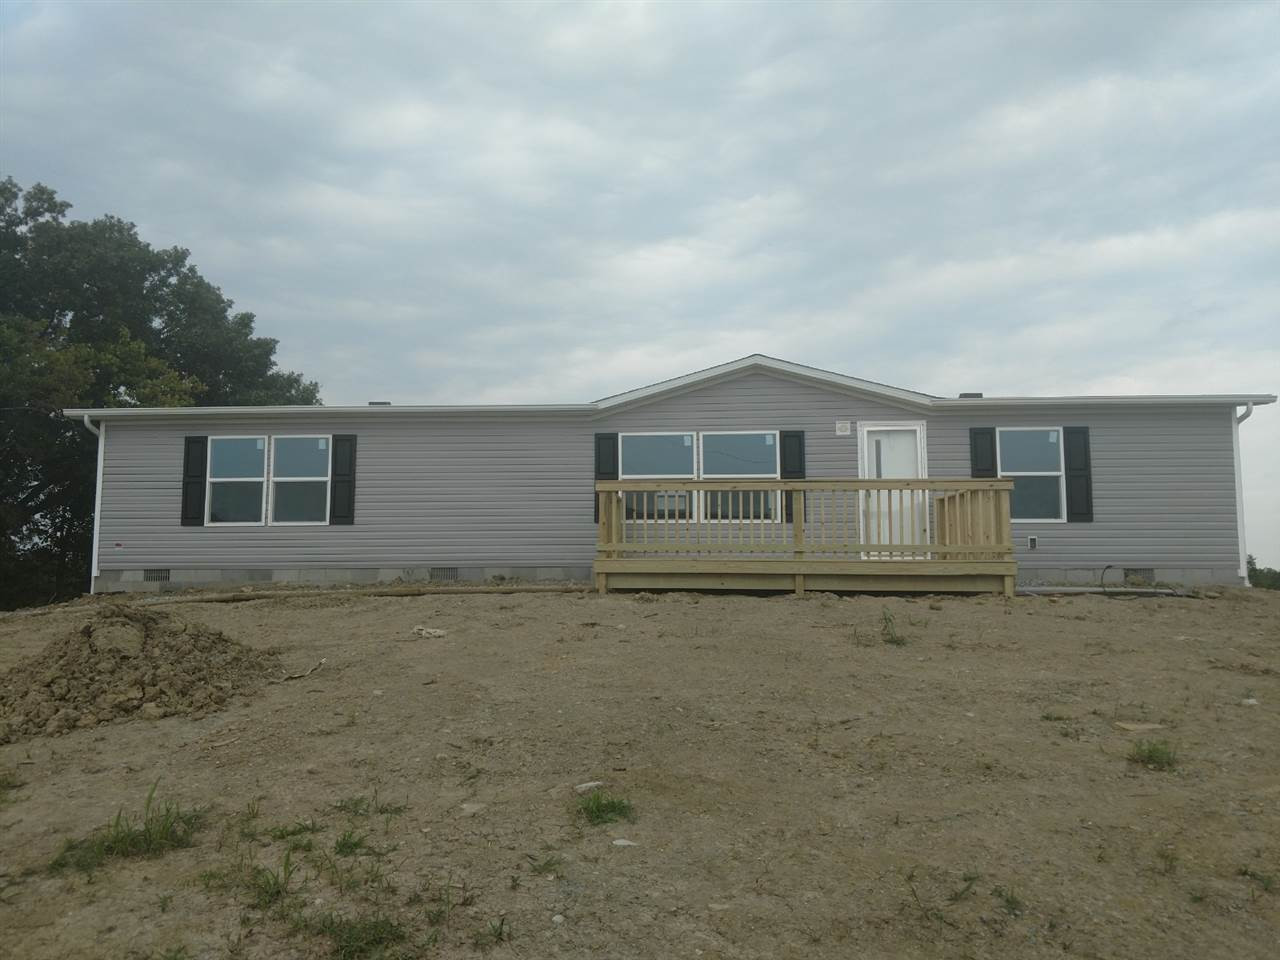 Photo 1 for 15084 W Berry, KY 41003